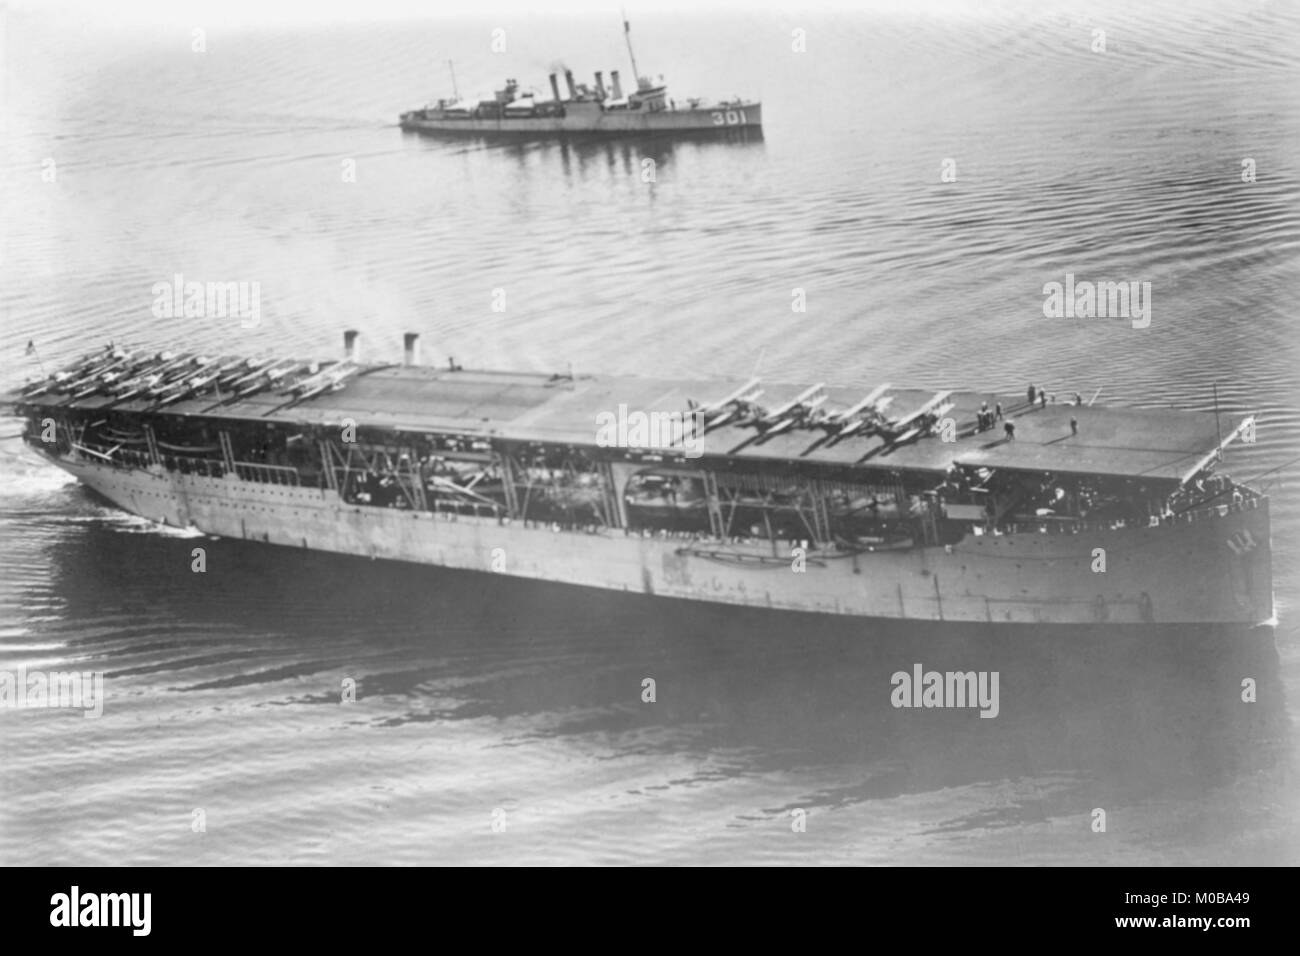 Langley Aircraft Carrier at Sea - Stock Image